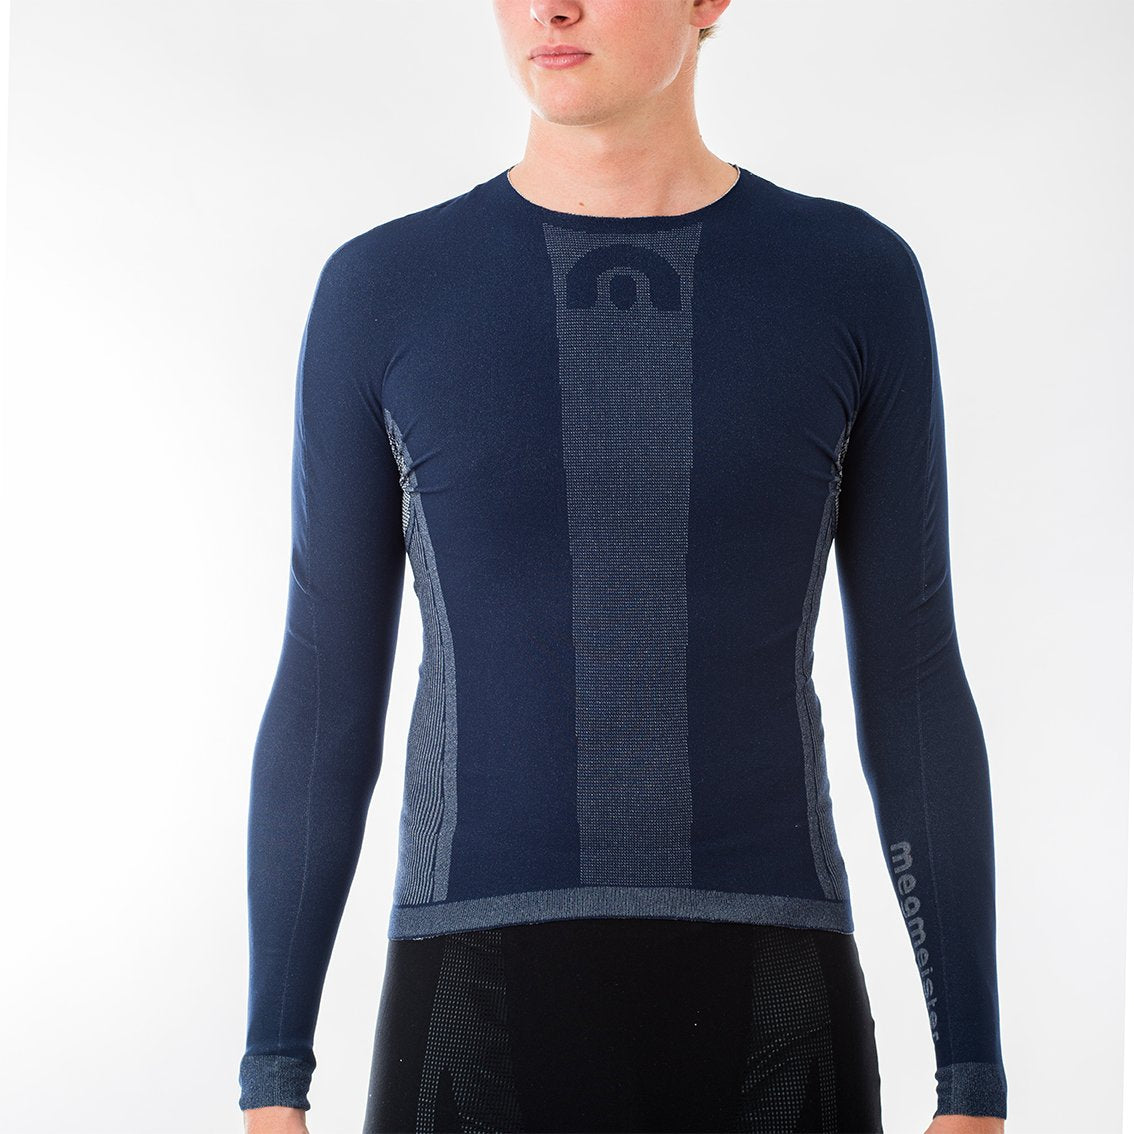 mens-drynamo-winter-cycle-long-sleeve-base-layer-in-blue